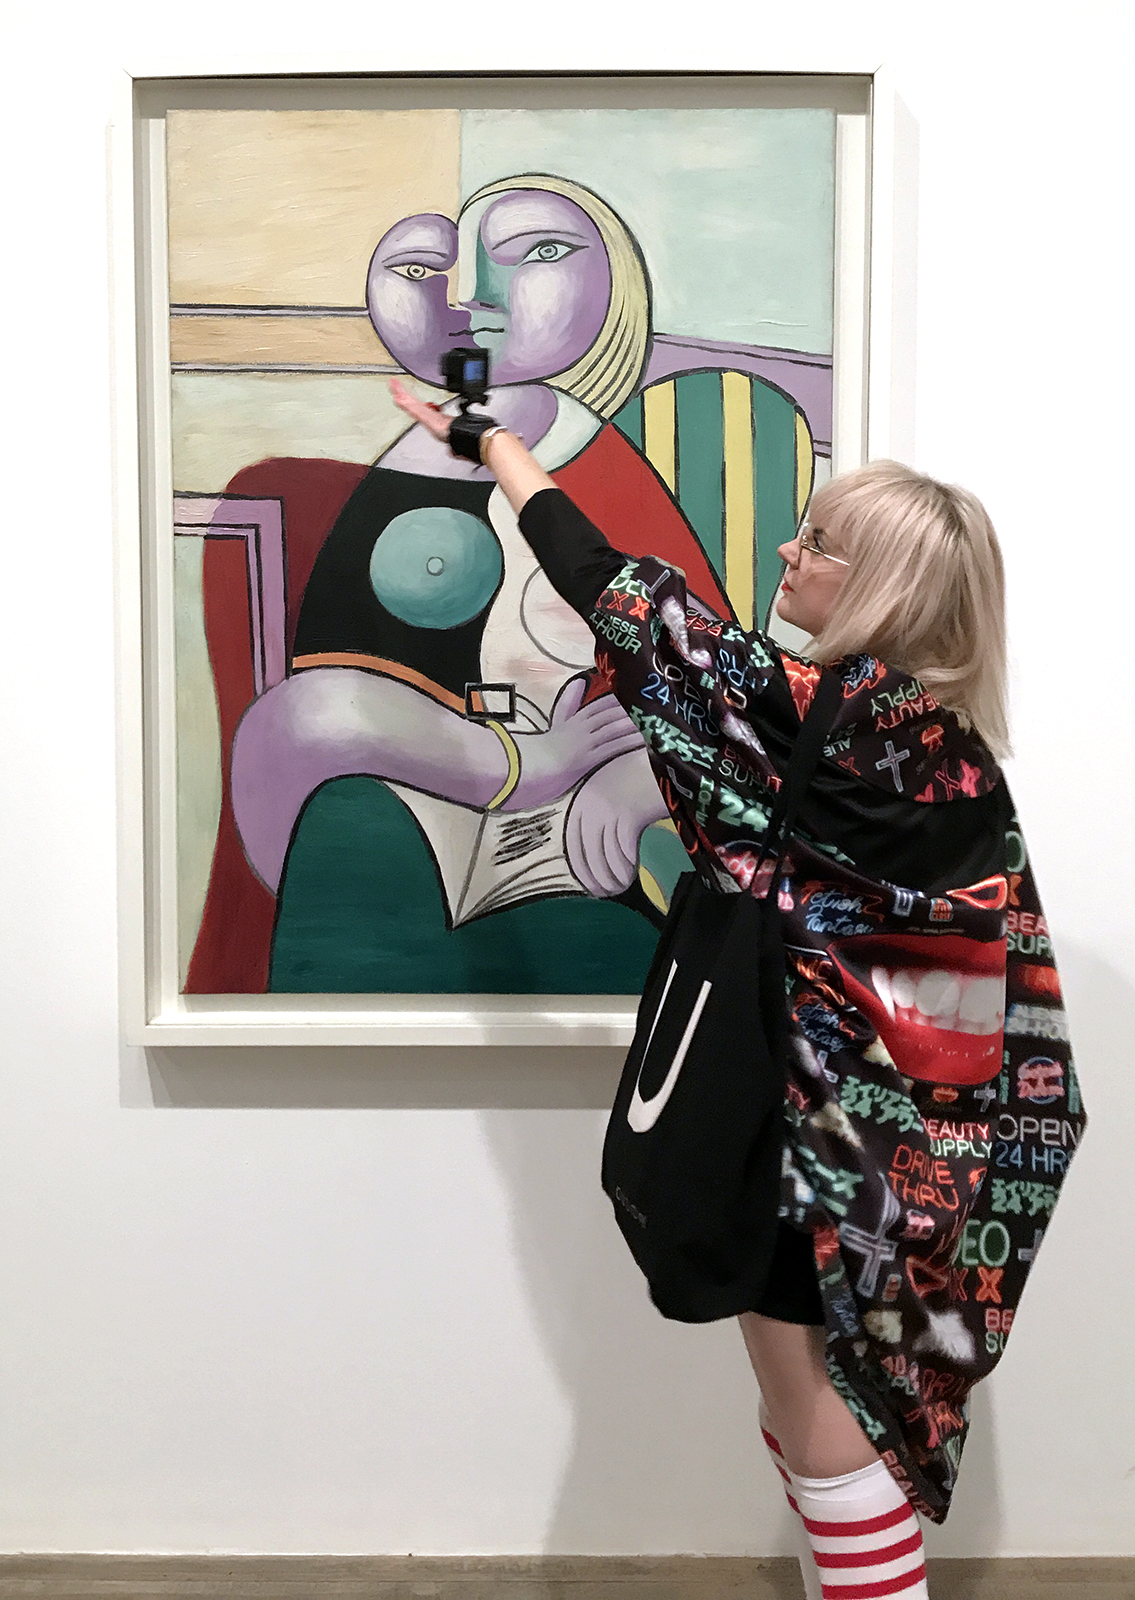 Holly-AnneGoProphet at Tate Modern - Picasso 1932 Love, Fame & Tragedy - Performance still, August 2018